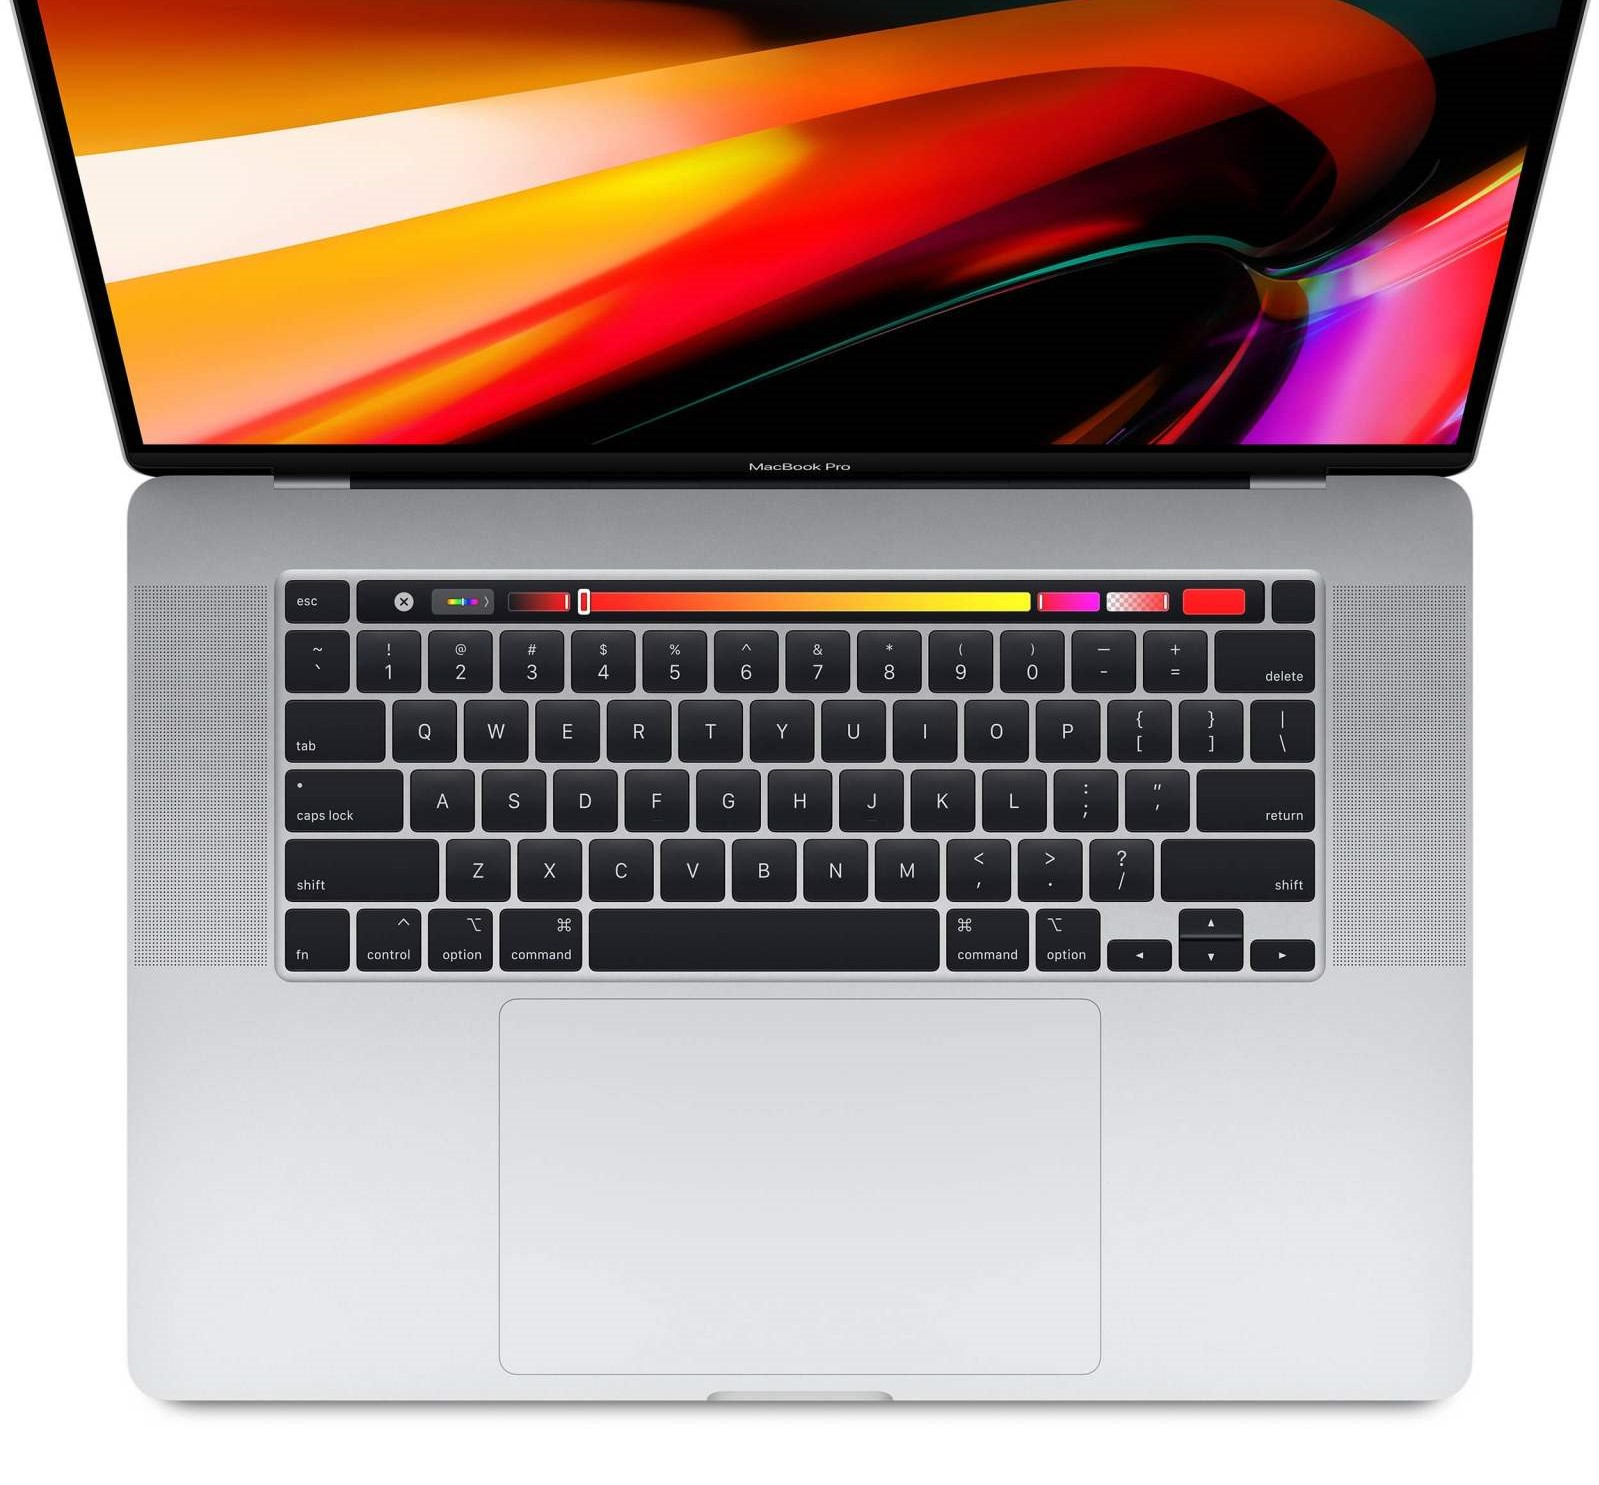 Apple MacBook Pro MVVM2 2019 - 16 inch Laptop With Touch Bar